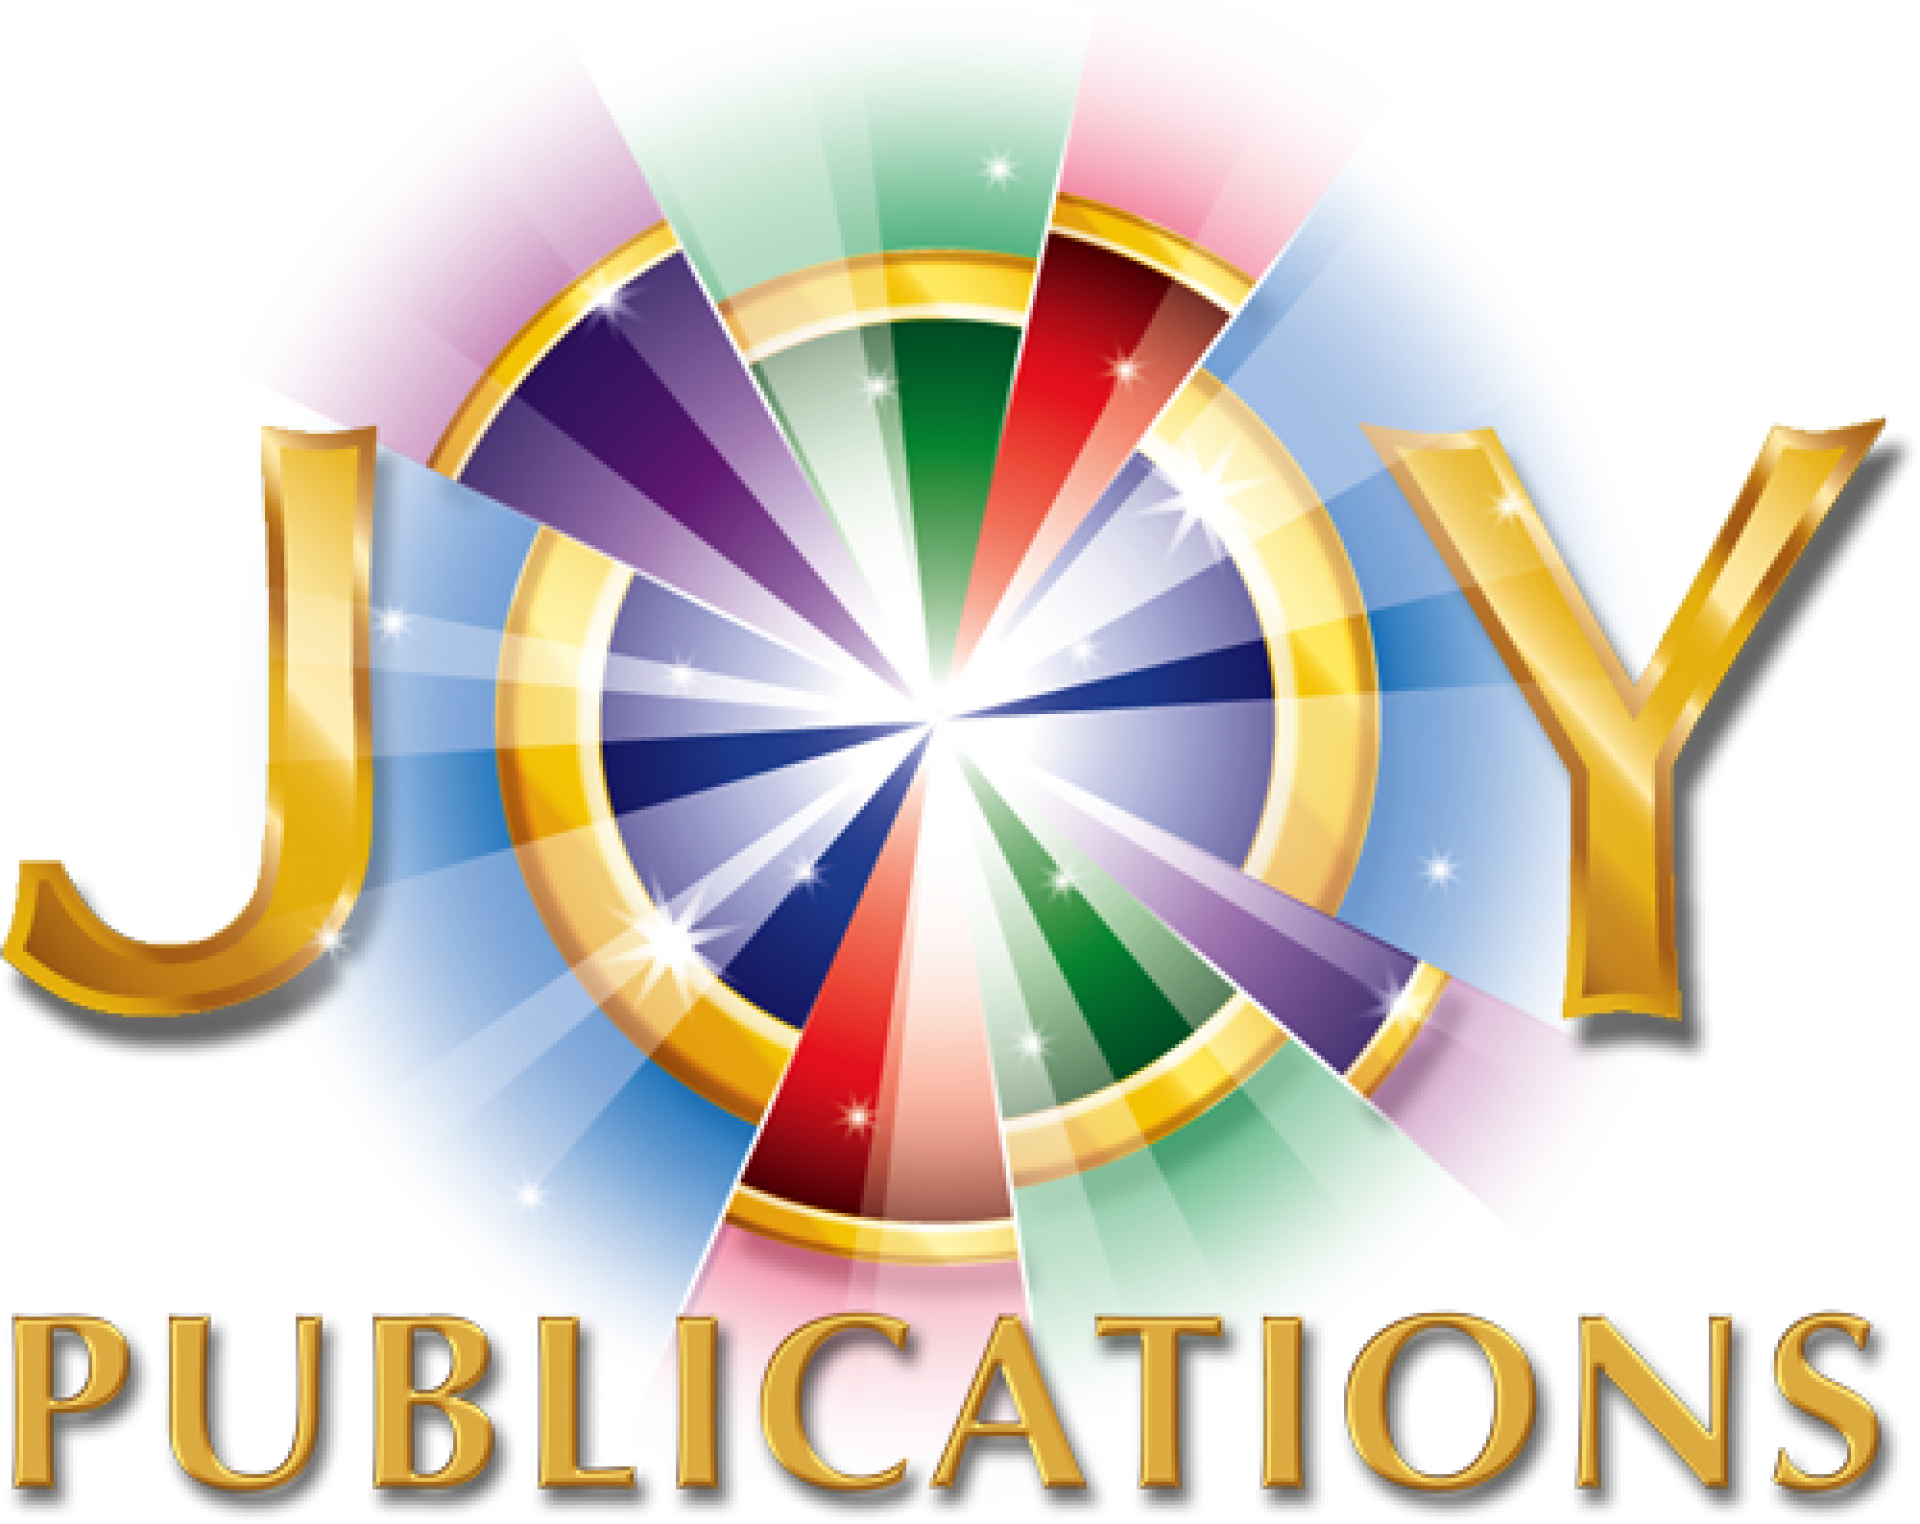 Joy Publications